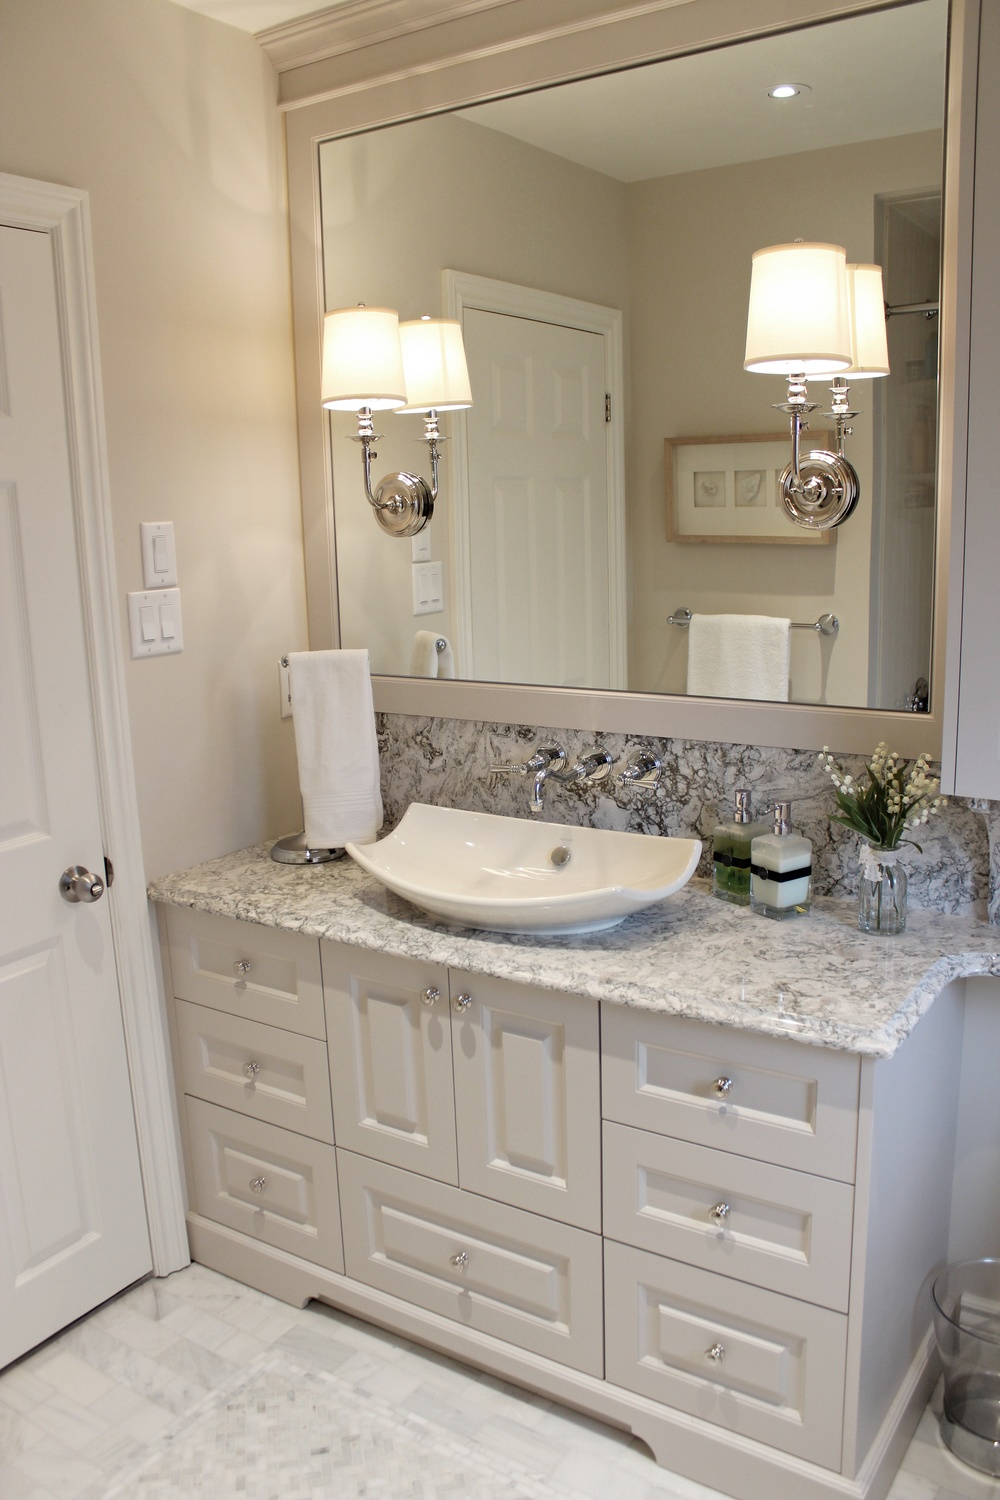 Main Vanity with the LARGE mirror and crown moulding